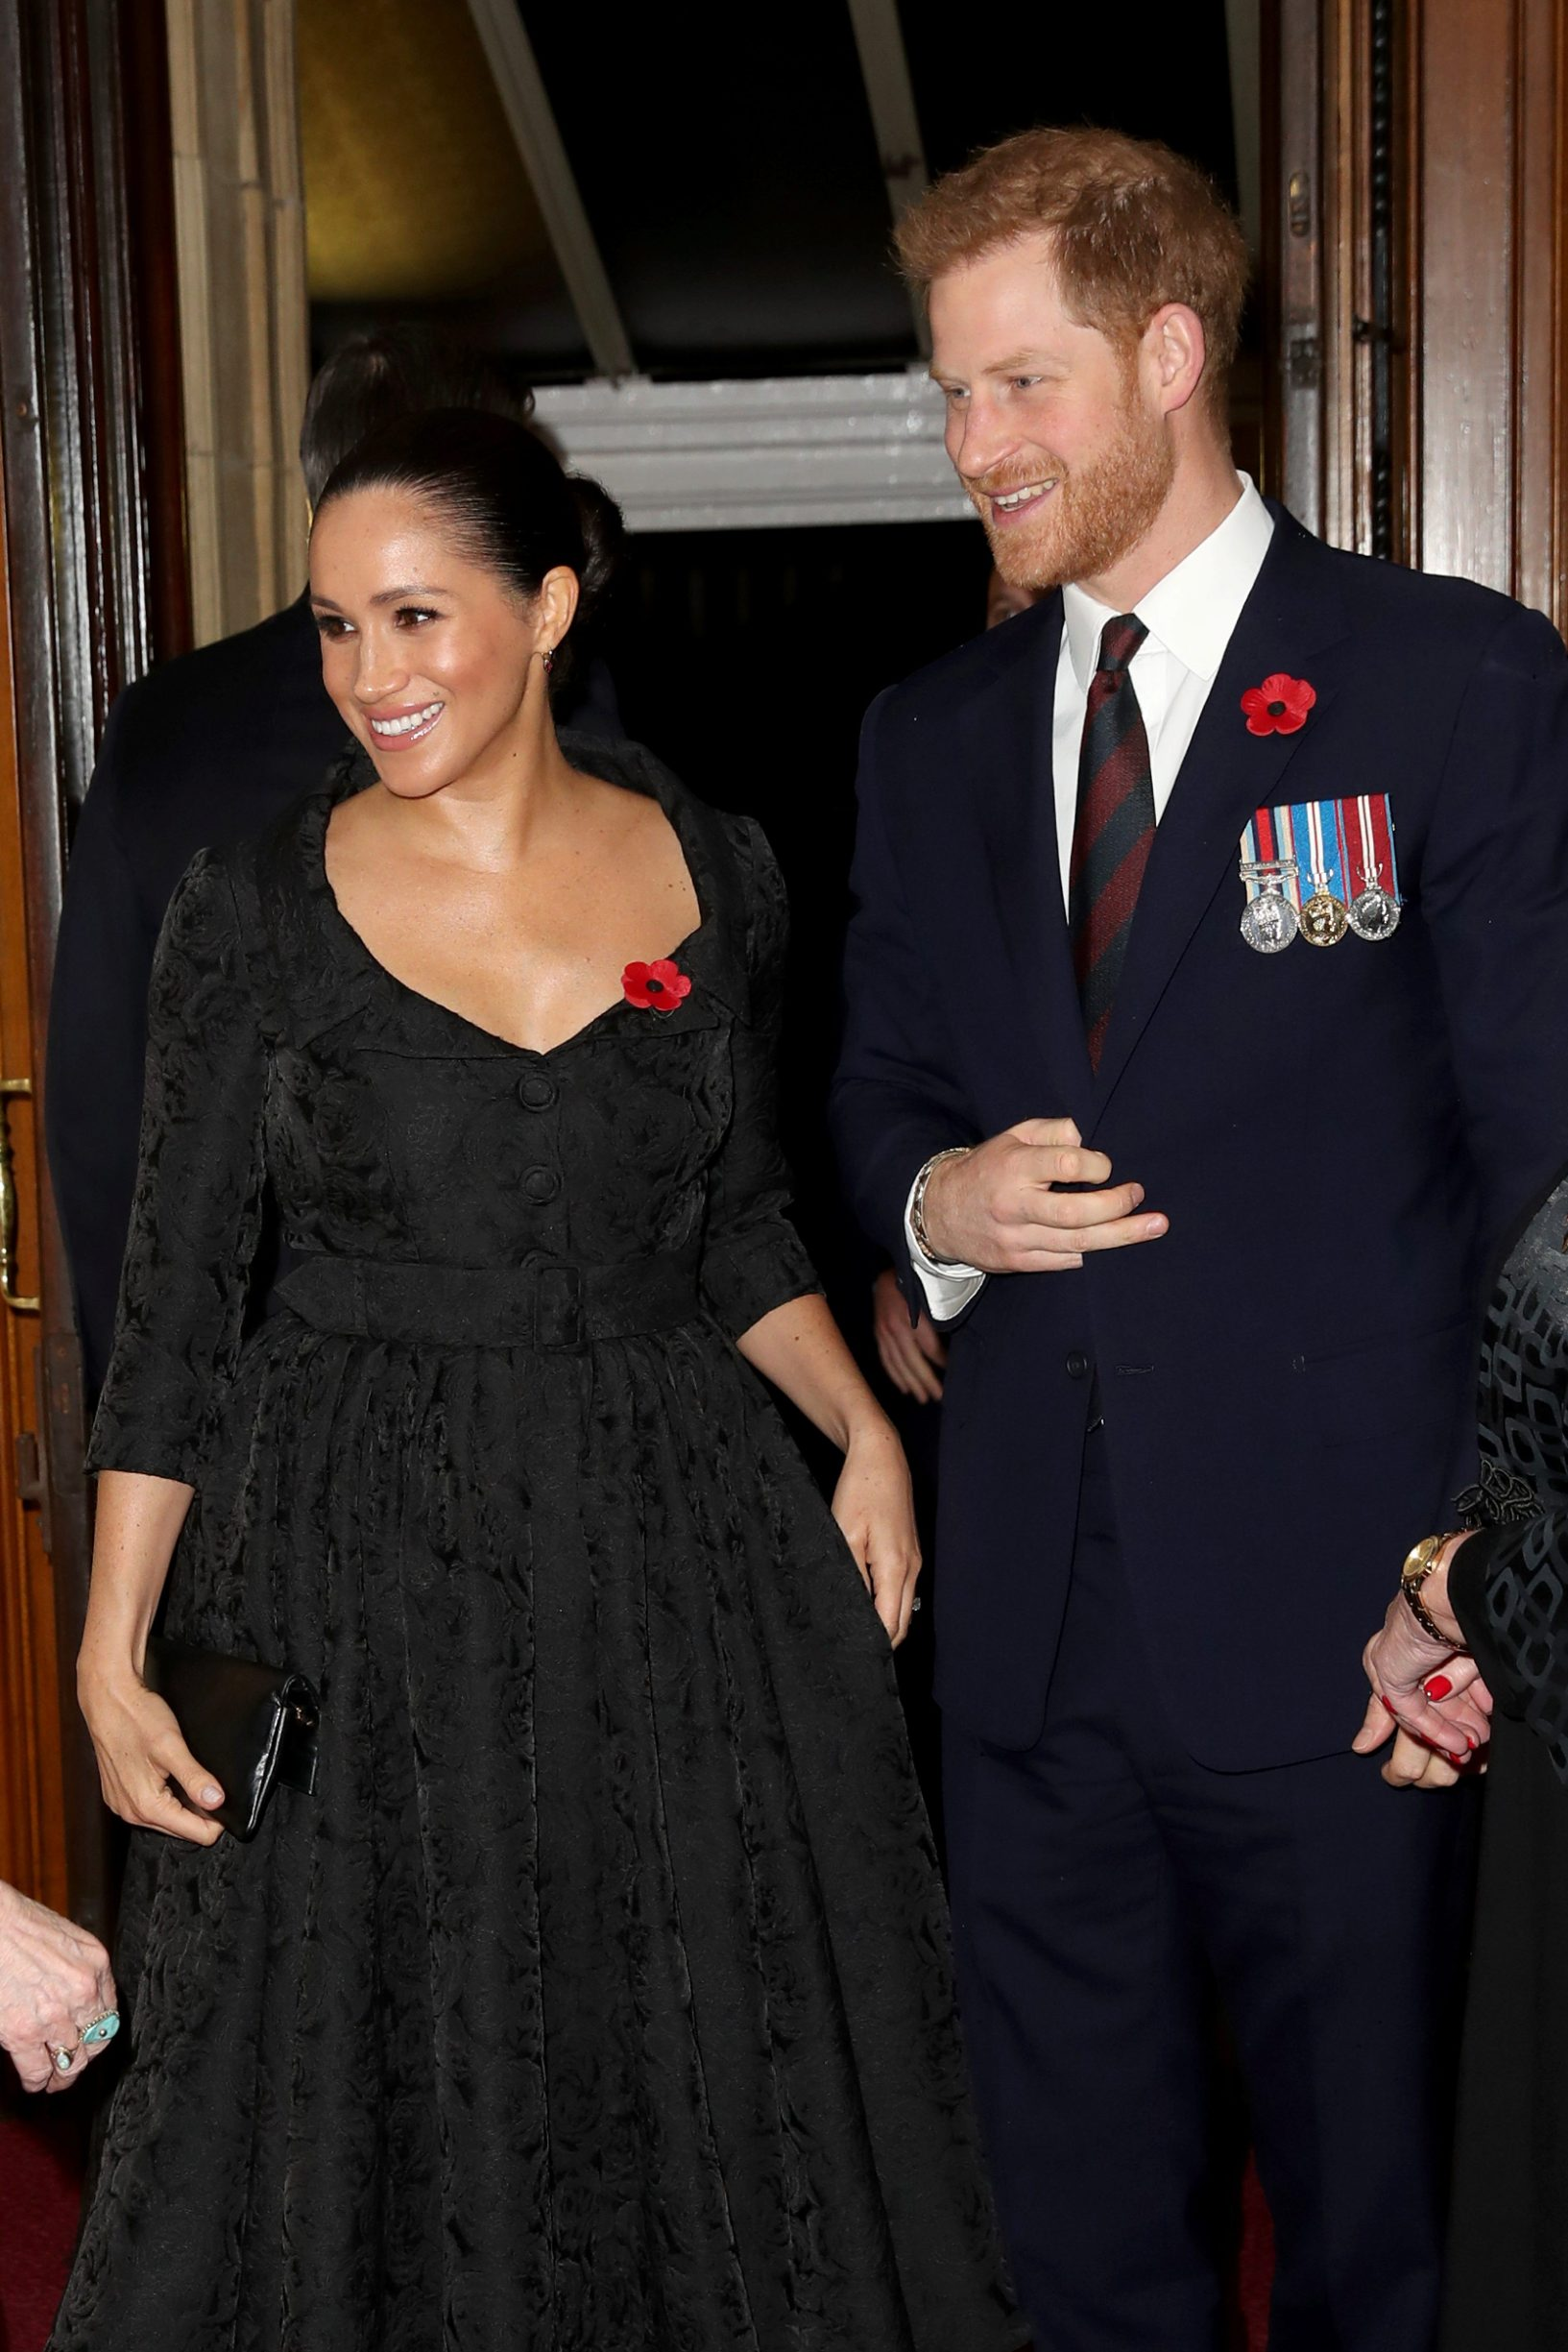 Britain's Prince Harry and Meghan, Duchess of Sussex, attend the annual Royal British Legion Festival of Remembrance at the Royal Albert Hall, London, Britain, November 9, 2019.  Chris Jackson/Pool/via REUTERS